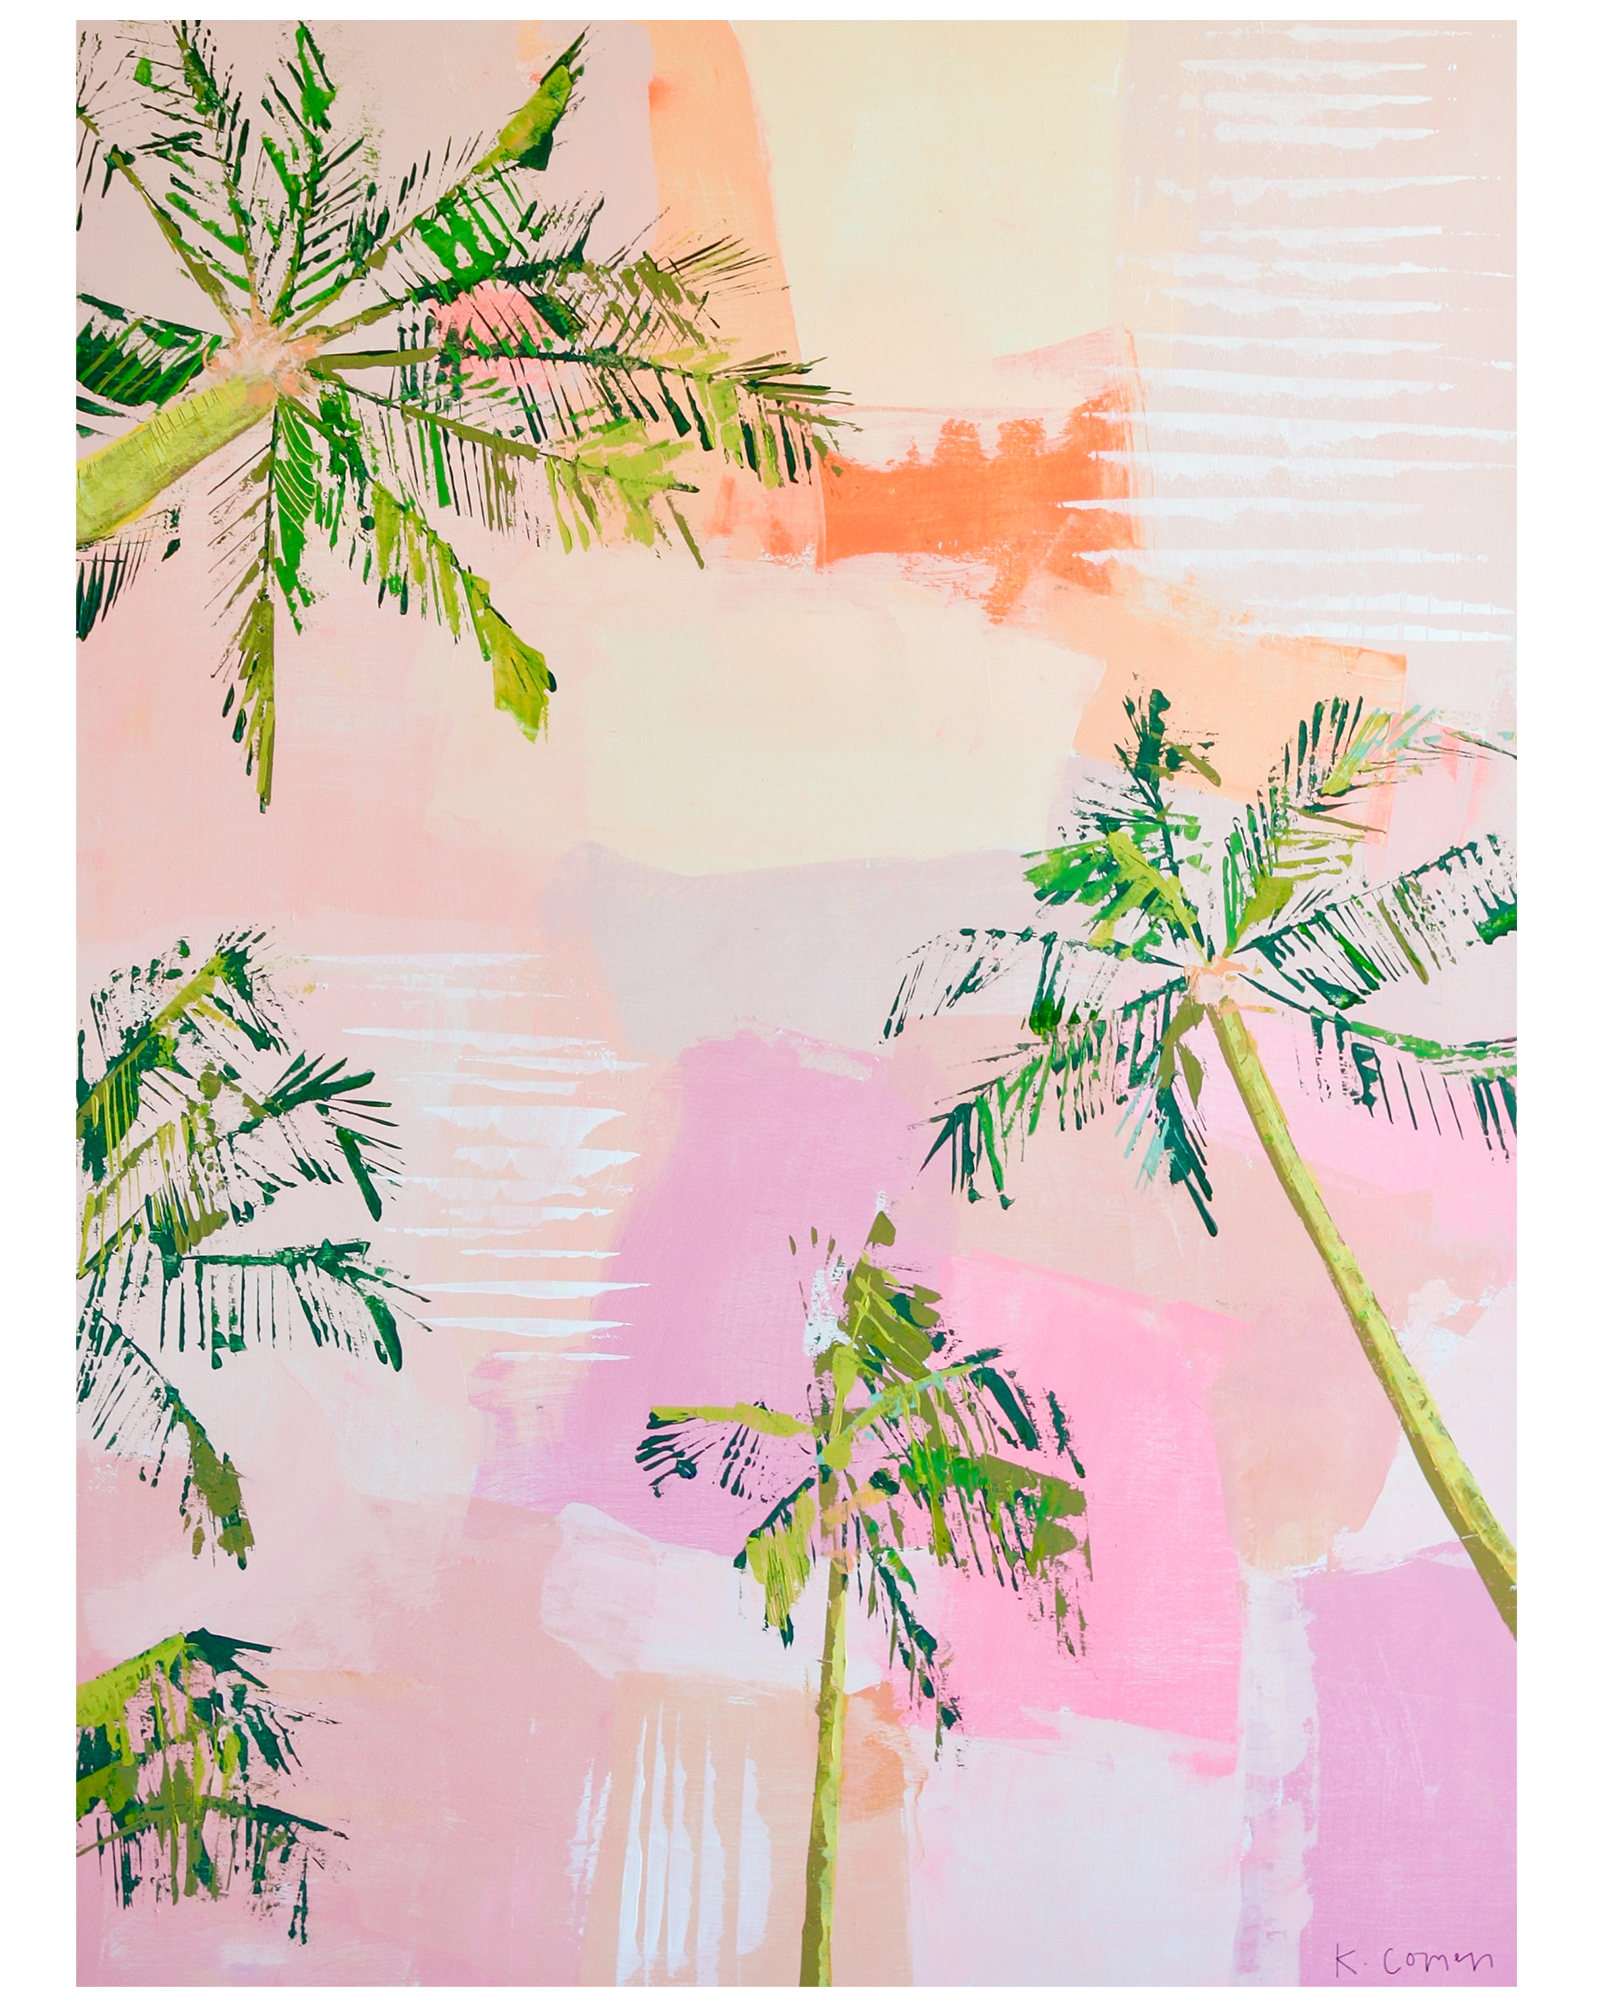 """Sunset Palm"" by Kate Comen,"